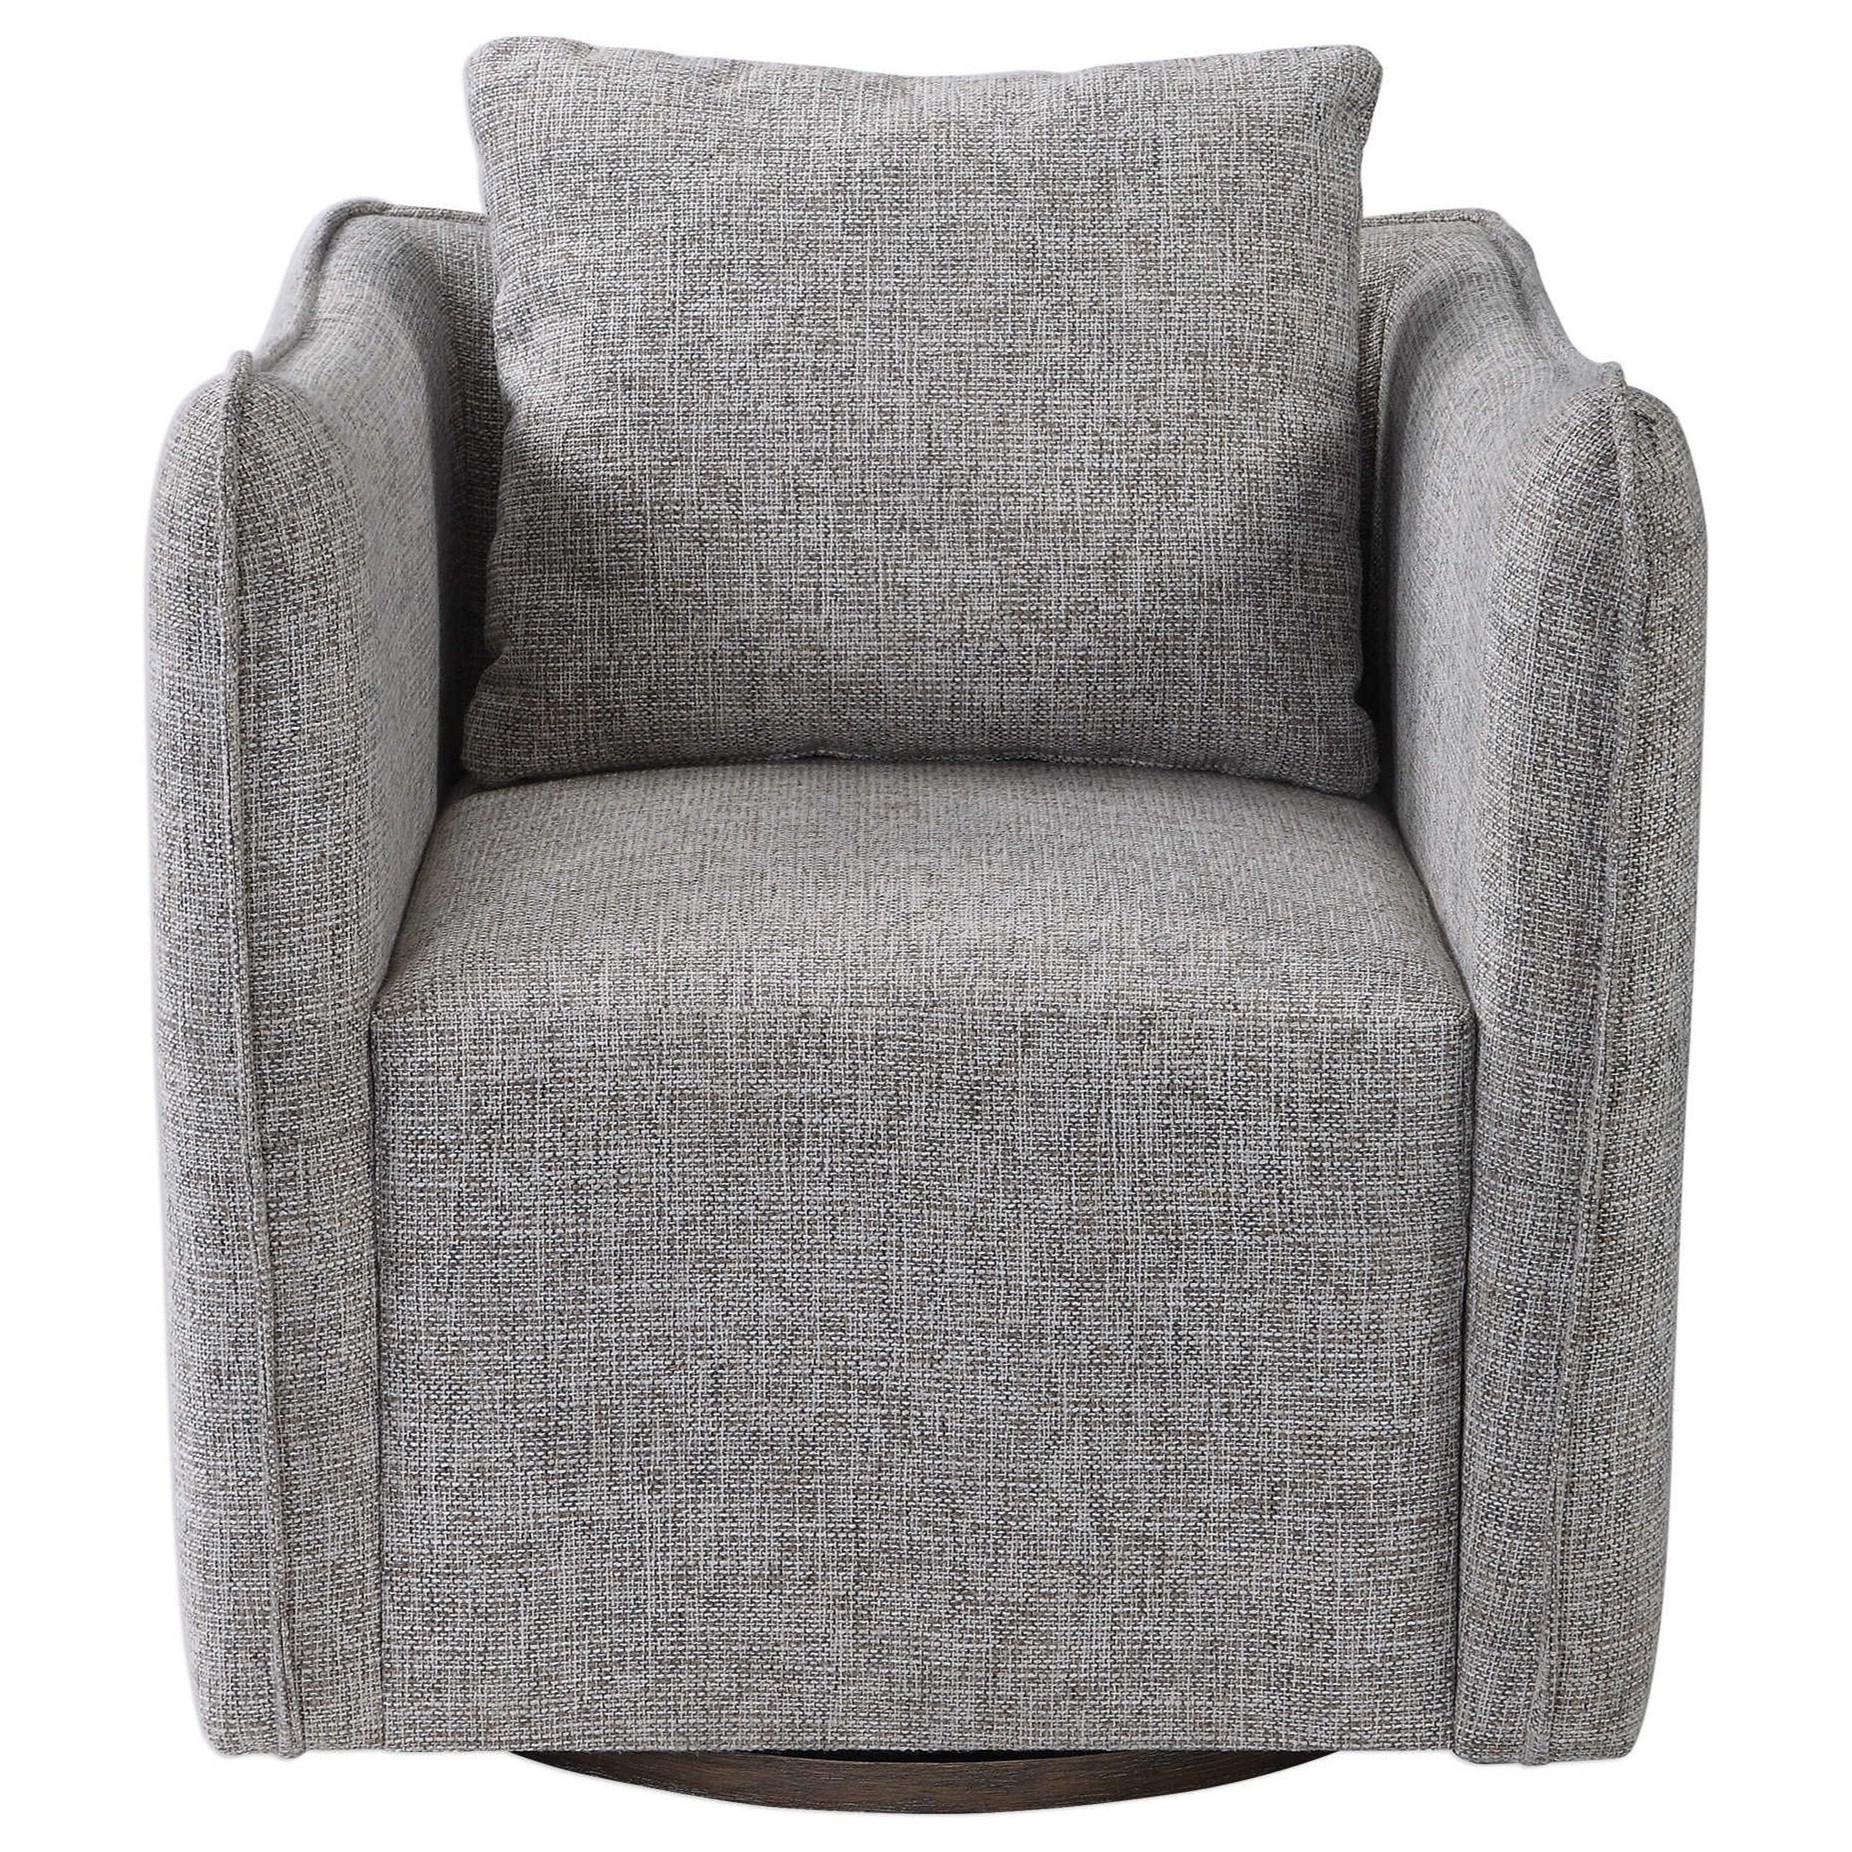 Accent Furniture - Accent Chairs Swivel Chair by Uttermost at Mueller Furniture